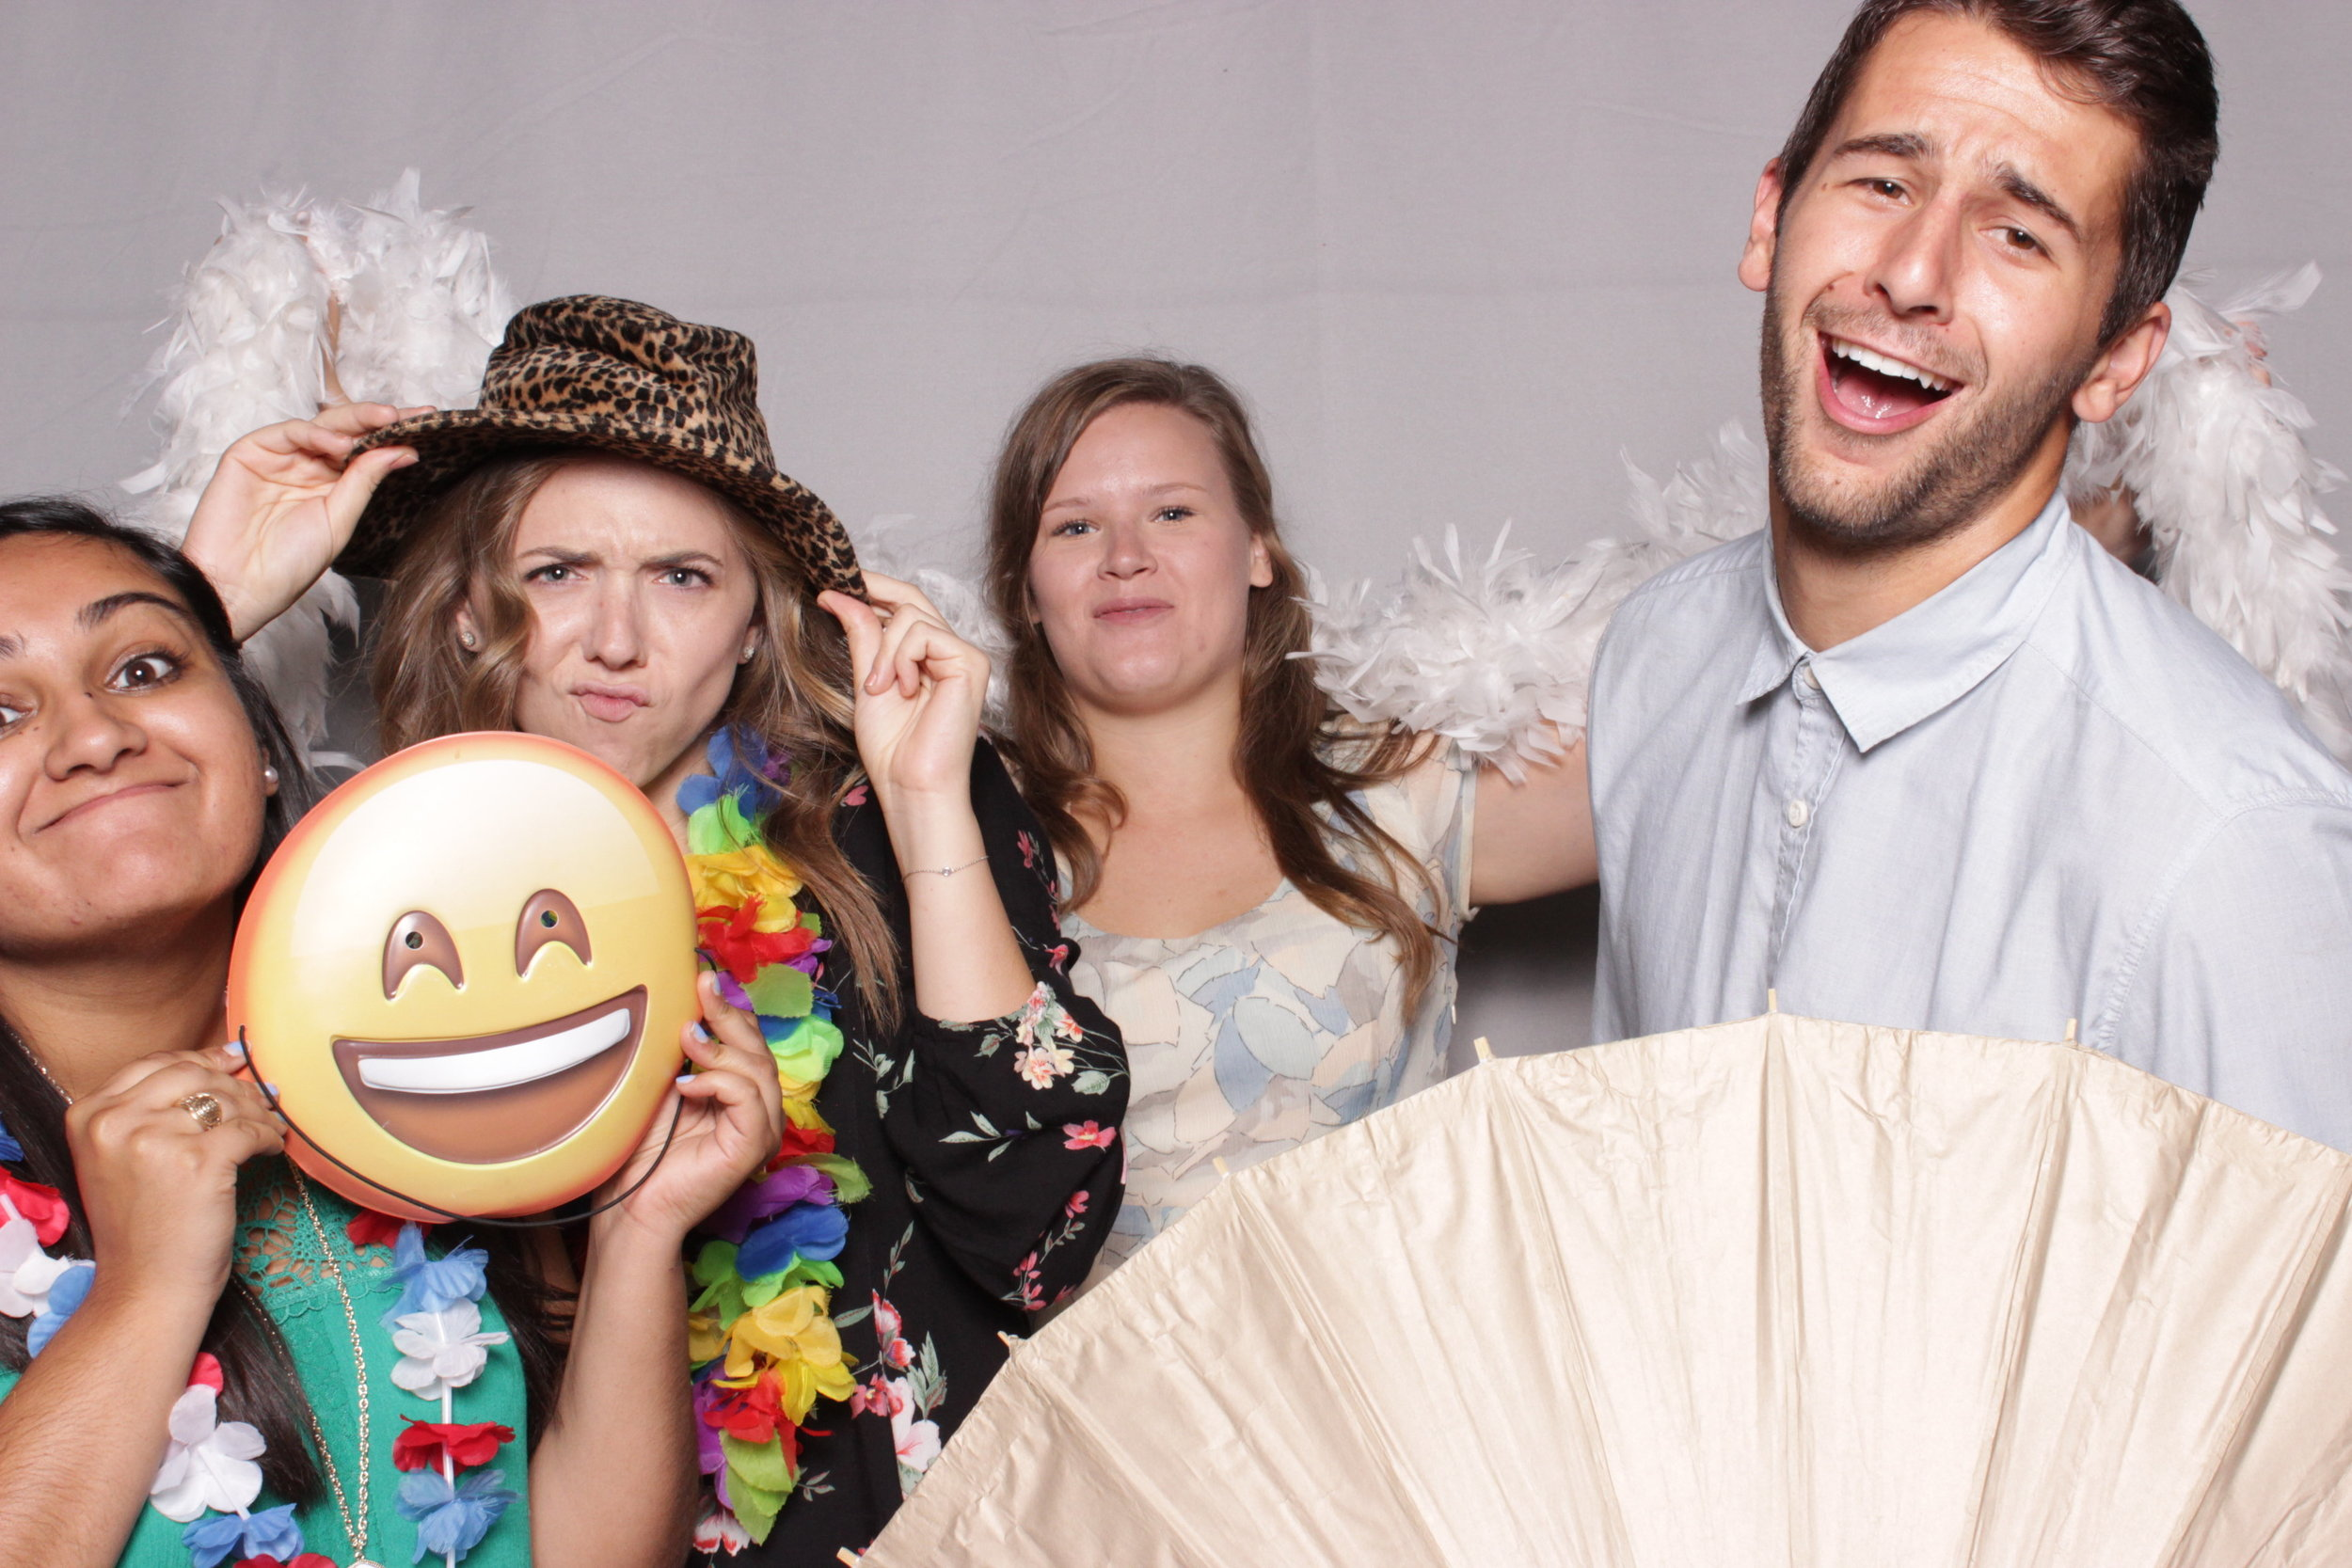 photo-booth-rental-chico-california-gale-vineyards-wedding